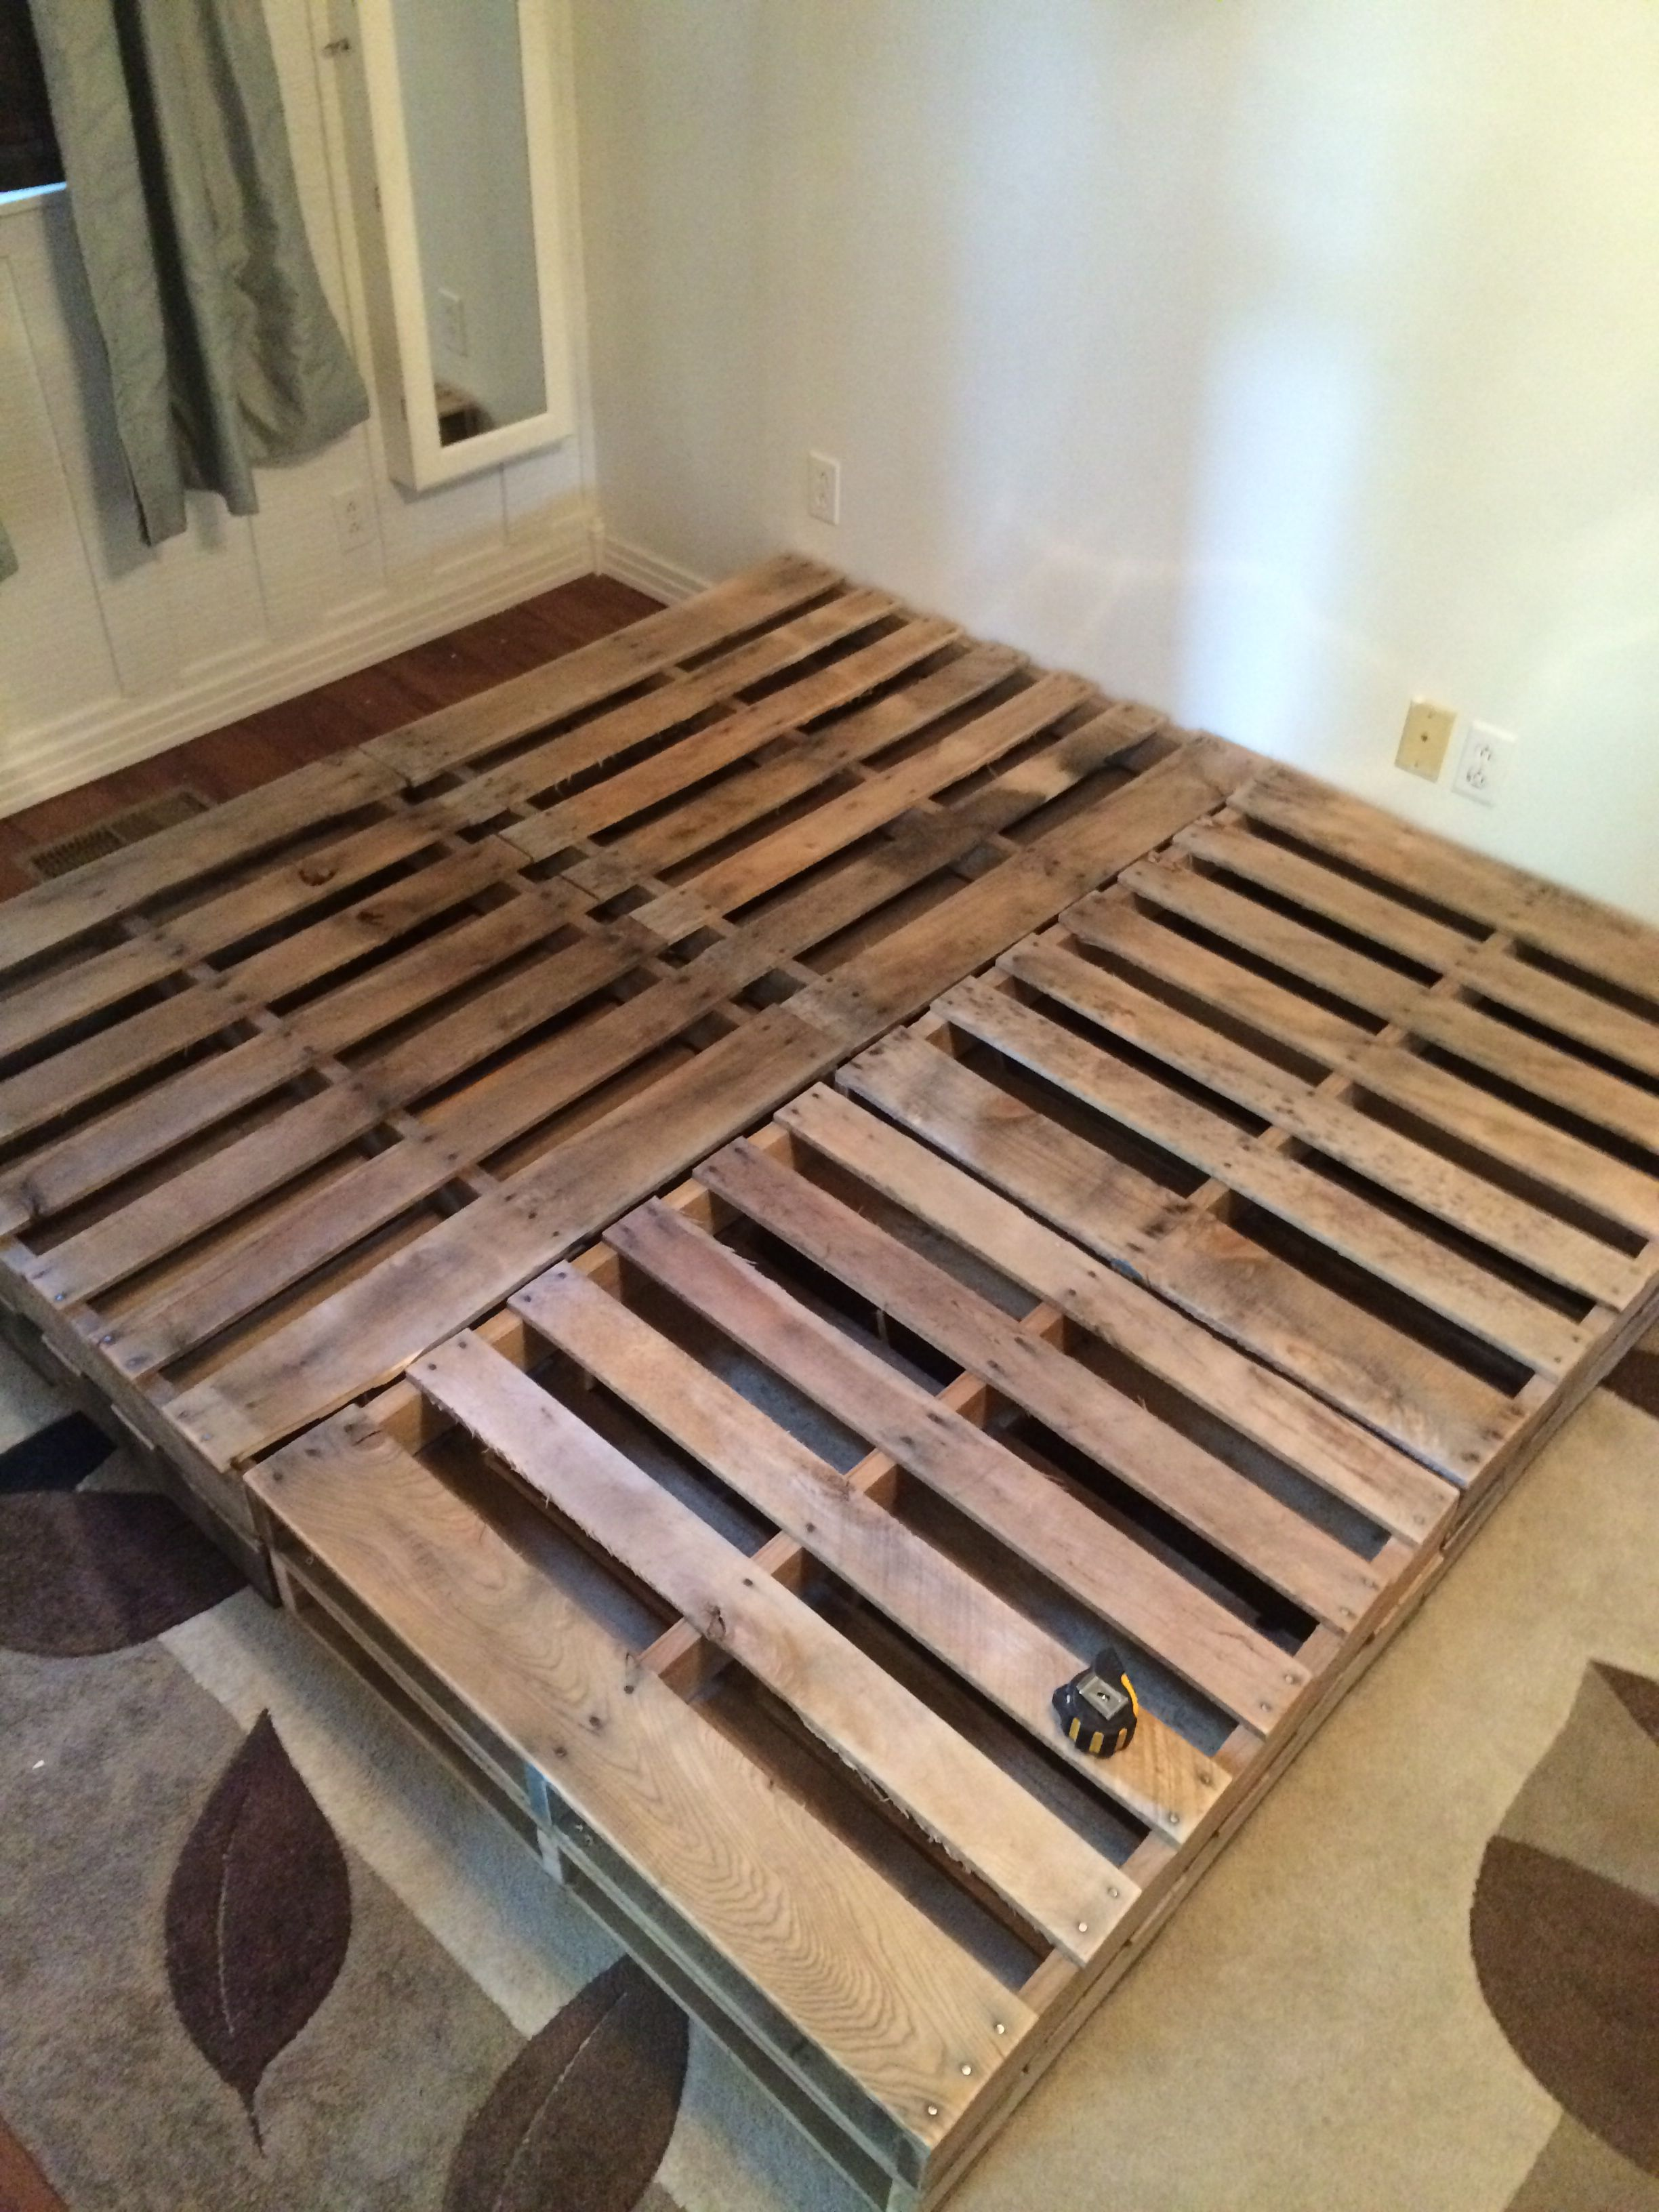 King Size pallet bed | Home | Pinterest | Diy palette